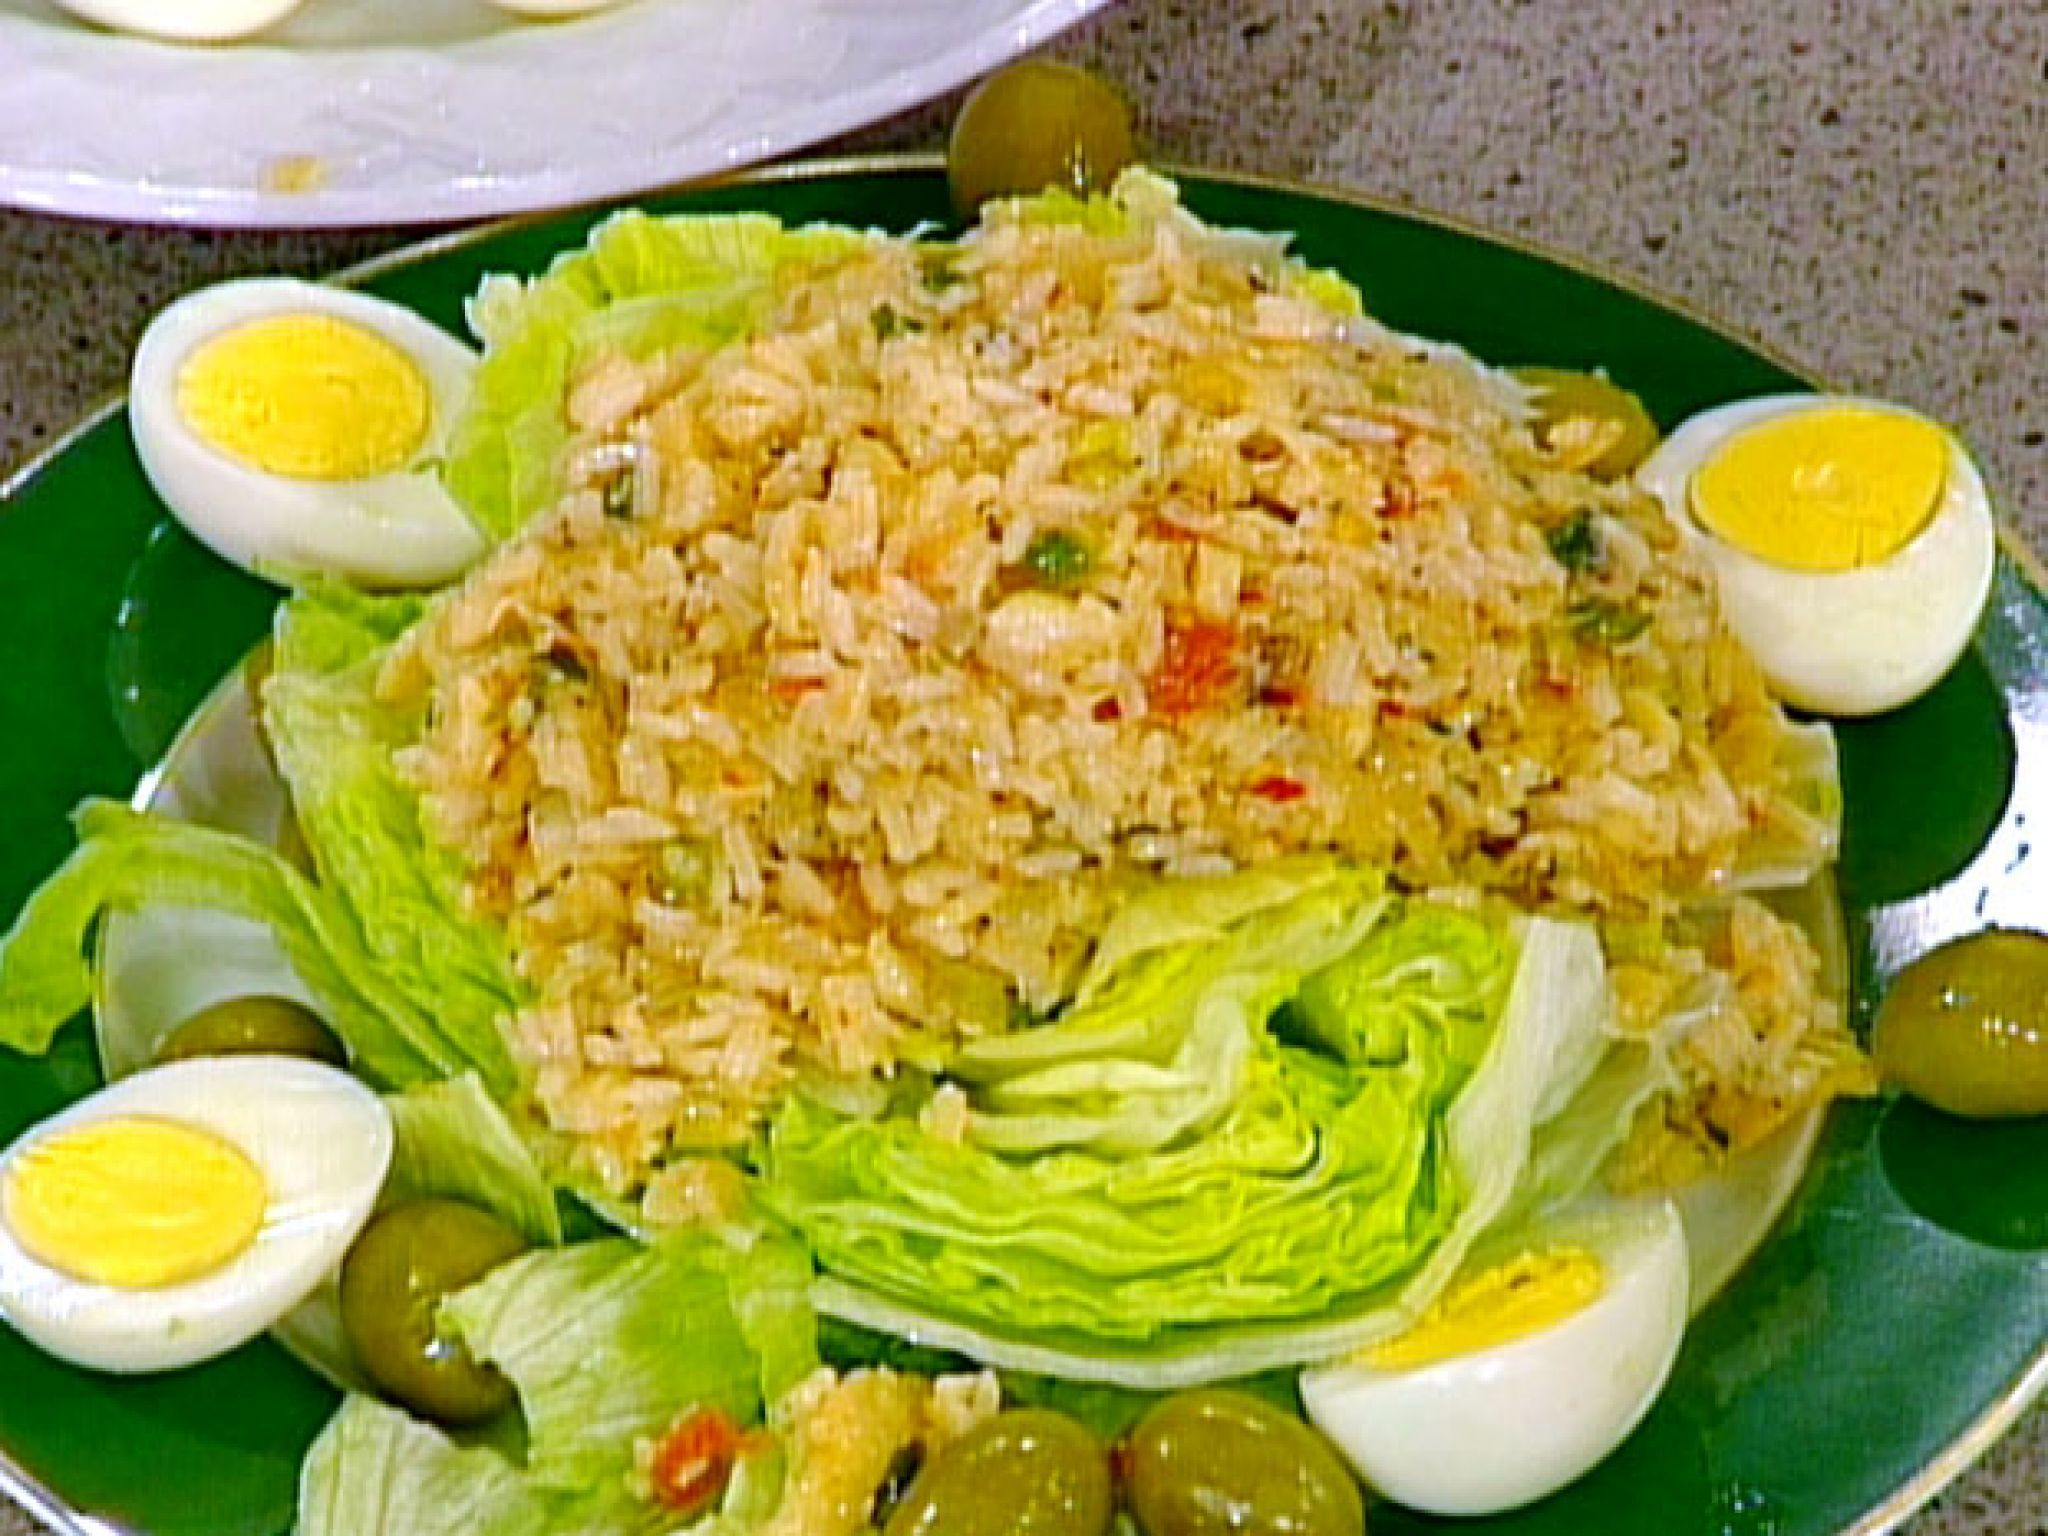 Portuguese rice and salt cod salad recipe from emeril lagasse via portuguese rice and salt cod salad recipe from emeril lagasse via food network forumfinder Gallery